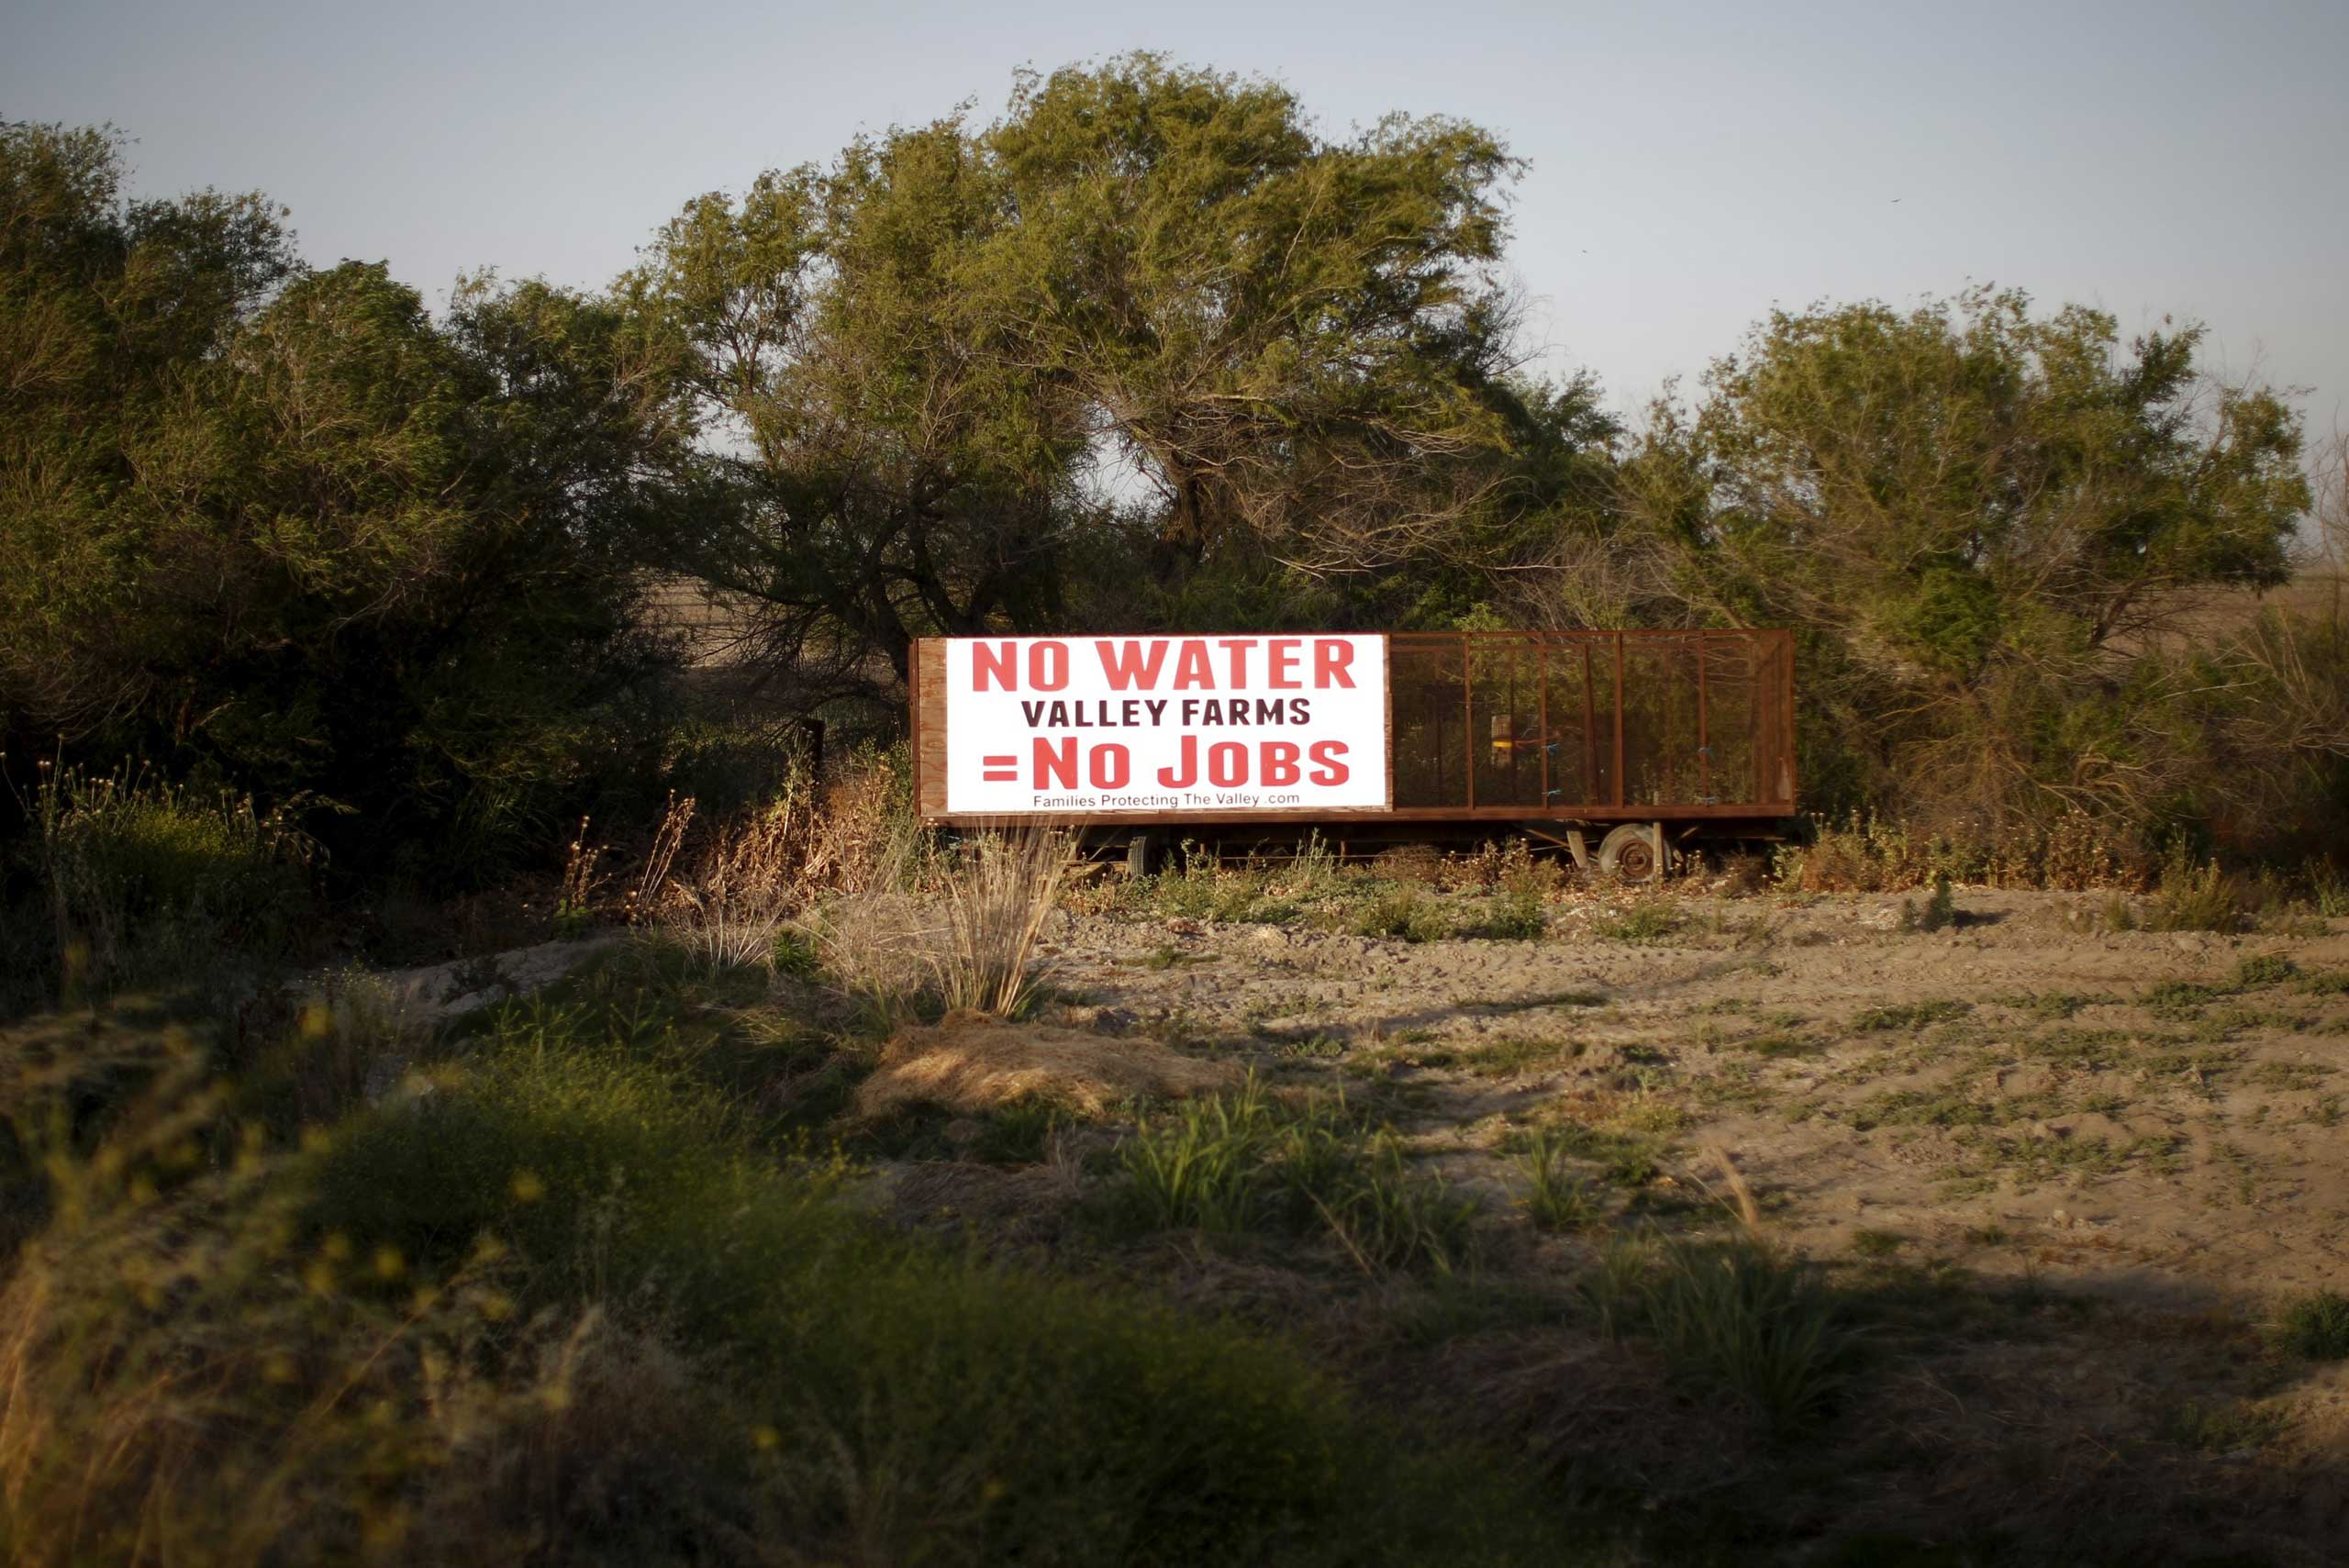 A water protest sign is seen in Los Banos, California, United States May 5, 2015. Central Valley counties suffer some of the highest unemployment rates in the state, topping out at more than 20% in Colusa County, according to the state's Legislative Analyst's Office.